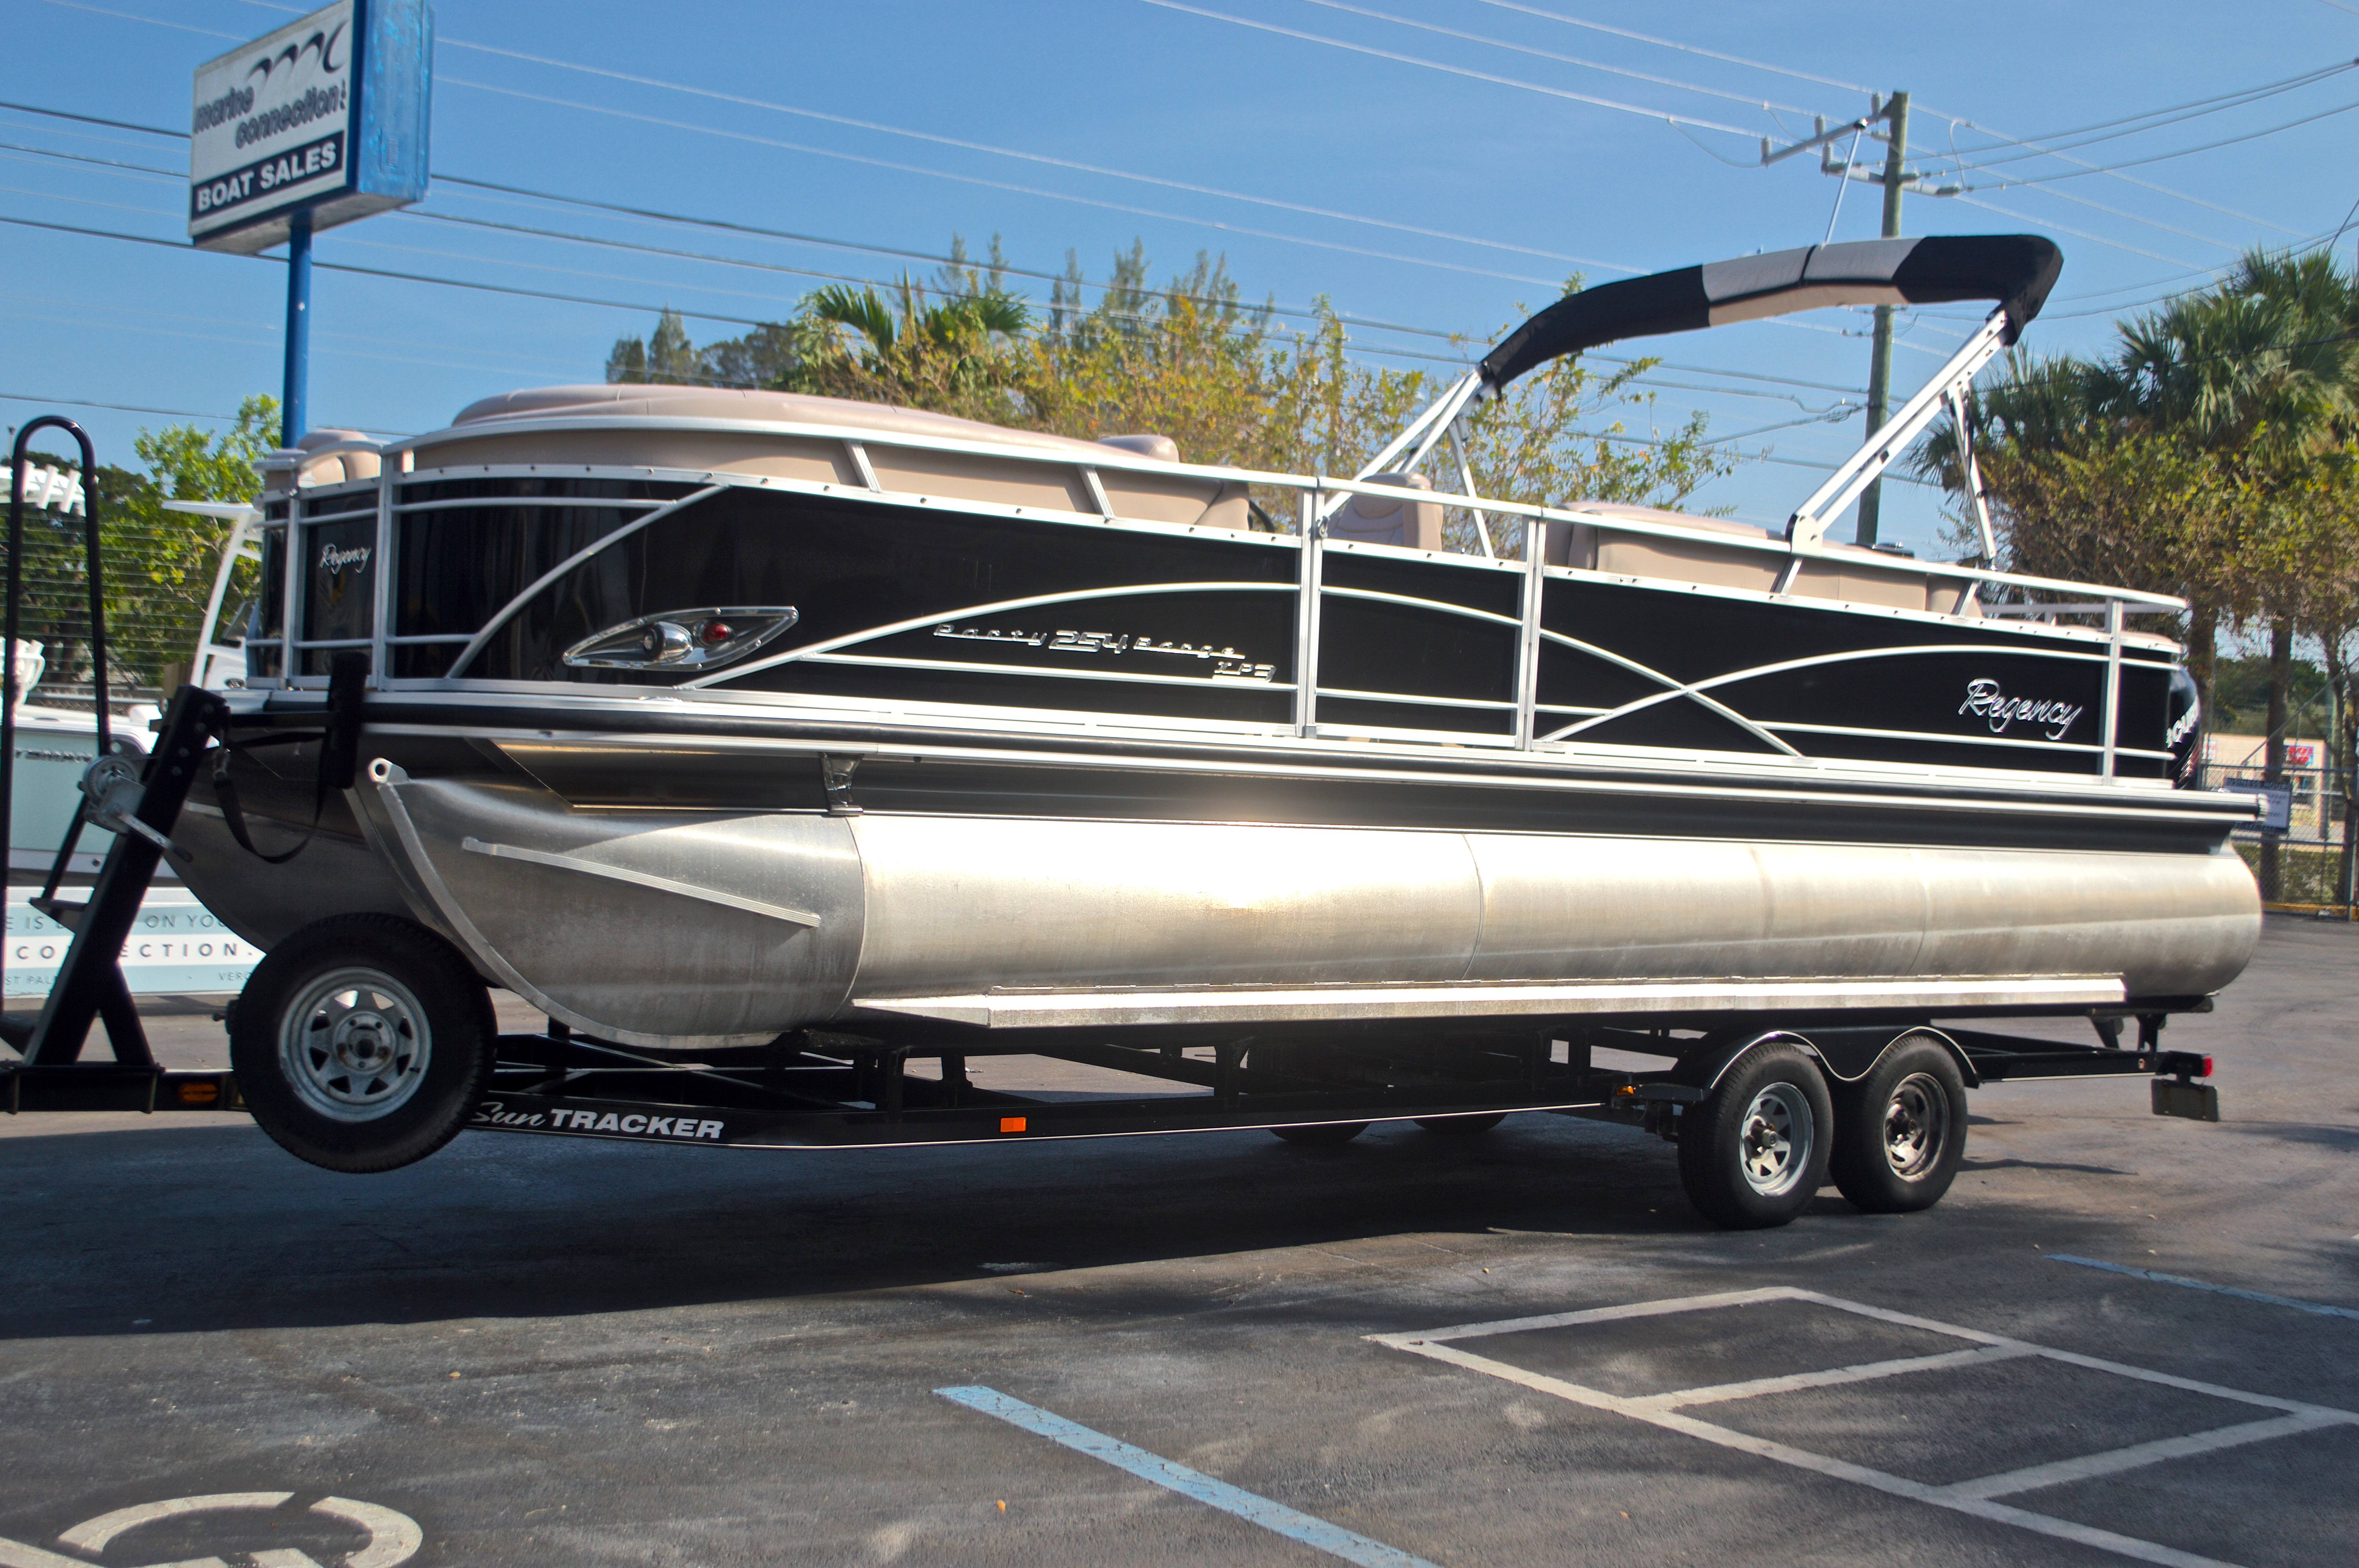 Thumbnail 4 for Used 2014 Regency Party Barge 254 XP3 boat for sale in West Palm Beach, FL